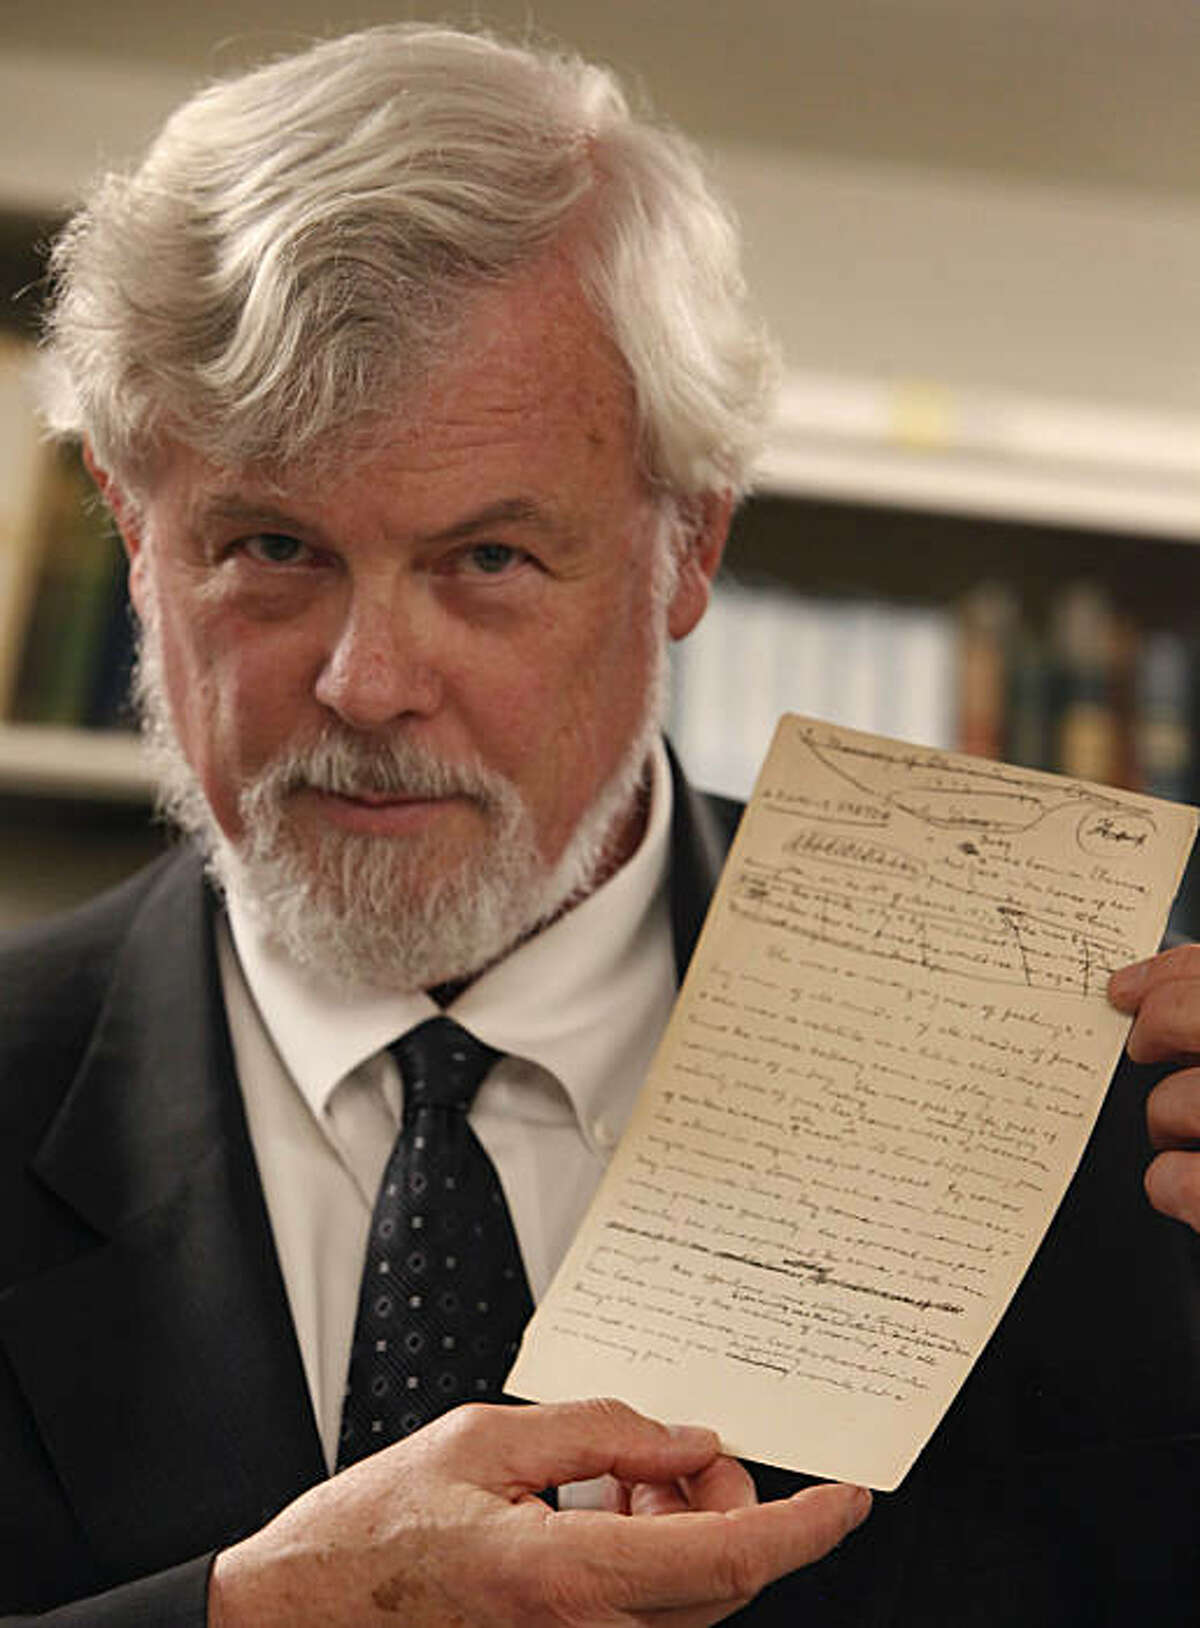 """Robert Hirst, general editor Mark Twain Project, holds the first page of """"A Family Sketch"""", a recent acquisition for UC Berkeley, in the Mark Twain Papers vault at the Bancroft Library at UC Berkeley on Friday, November 5, 2010 in Berkeley, Calif."""